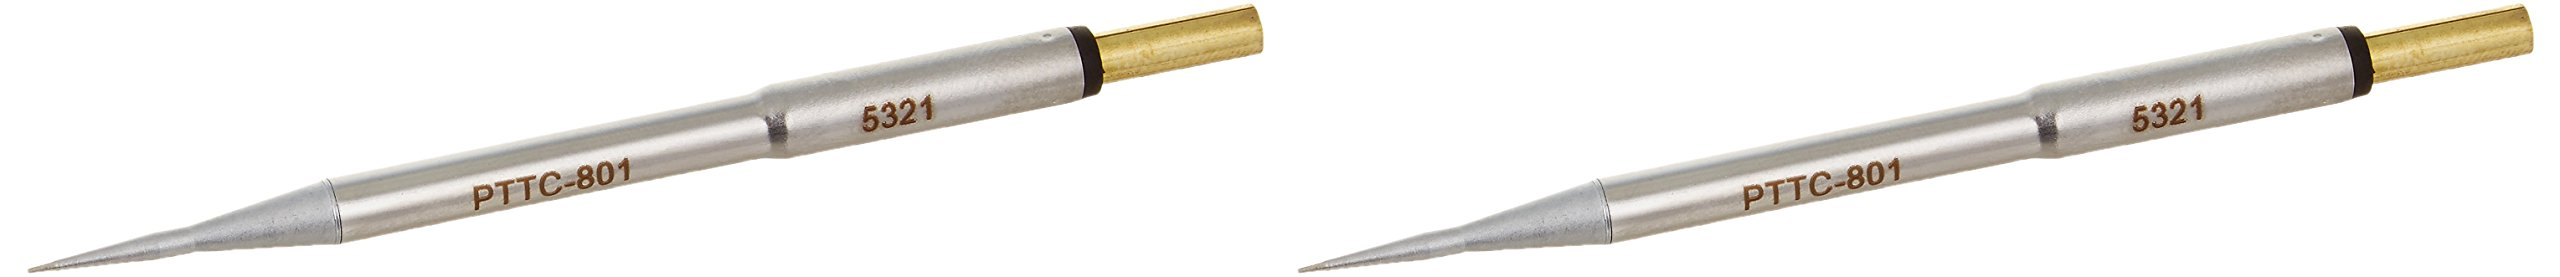 Metcal PTTC-801 PTTC Series Tweezer Cartridge for Ceramic and High Thermal Demand Applications, Conical, 0.4mm Tip Size, 19mm Tip Length